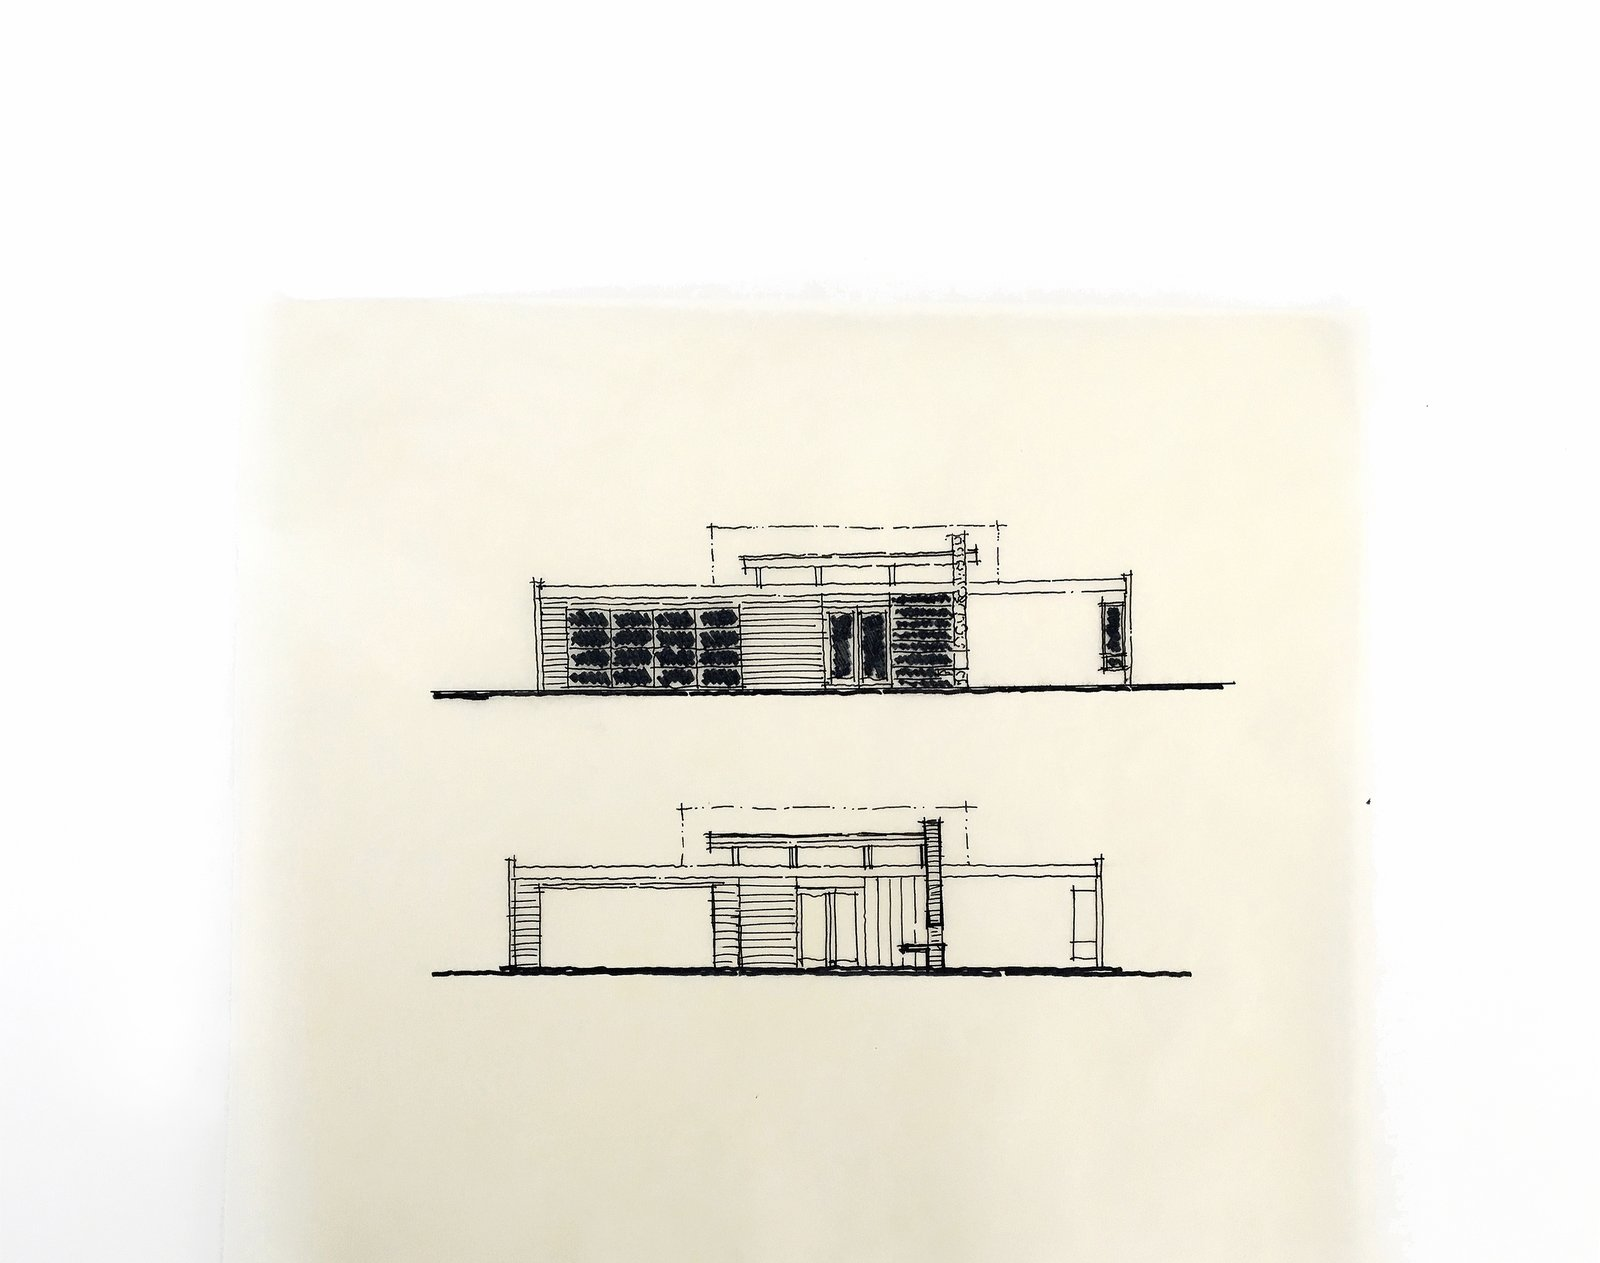 elevation hand sketches / architectural design process  [mid-century modern addition + renovation, laguna niguel california]  Architectural Drawings